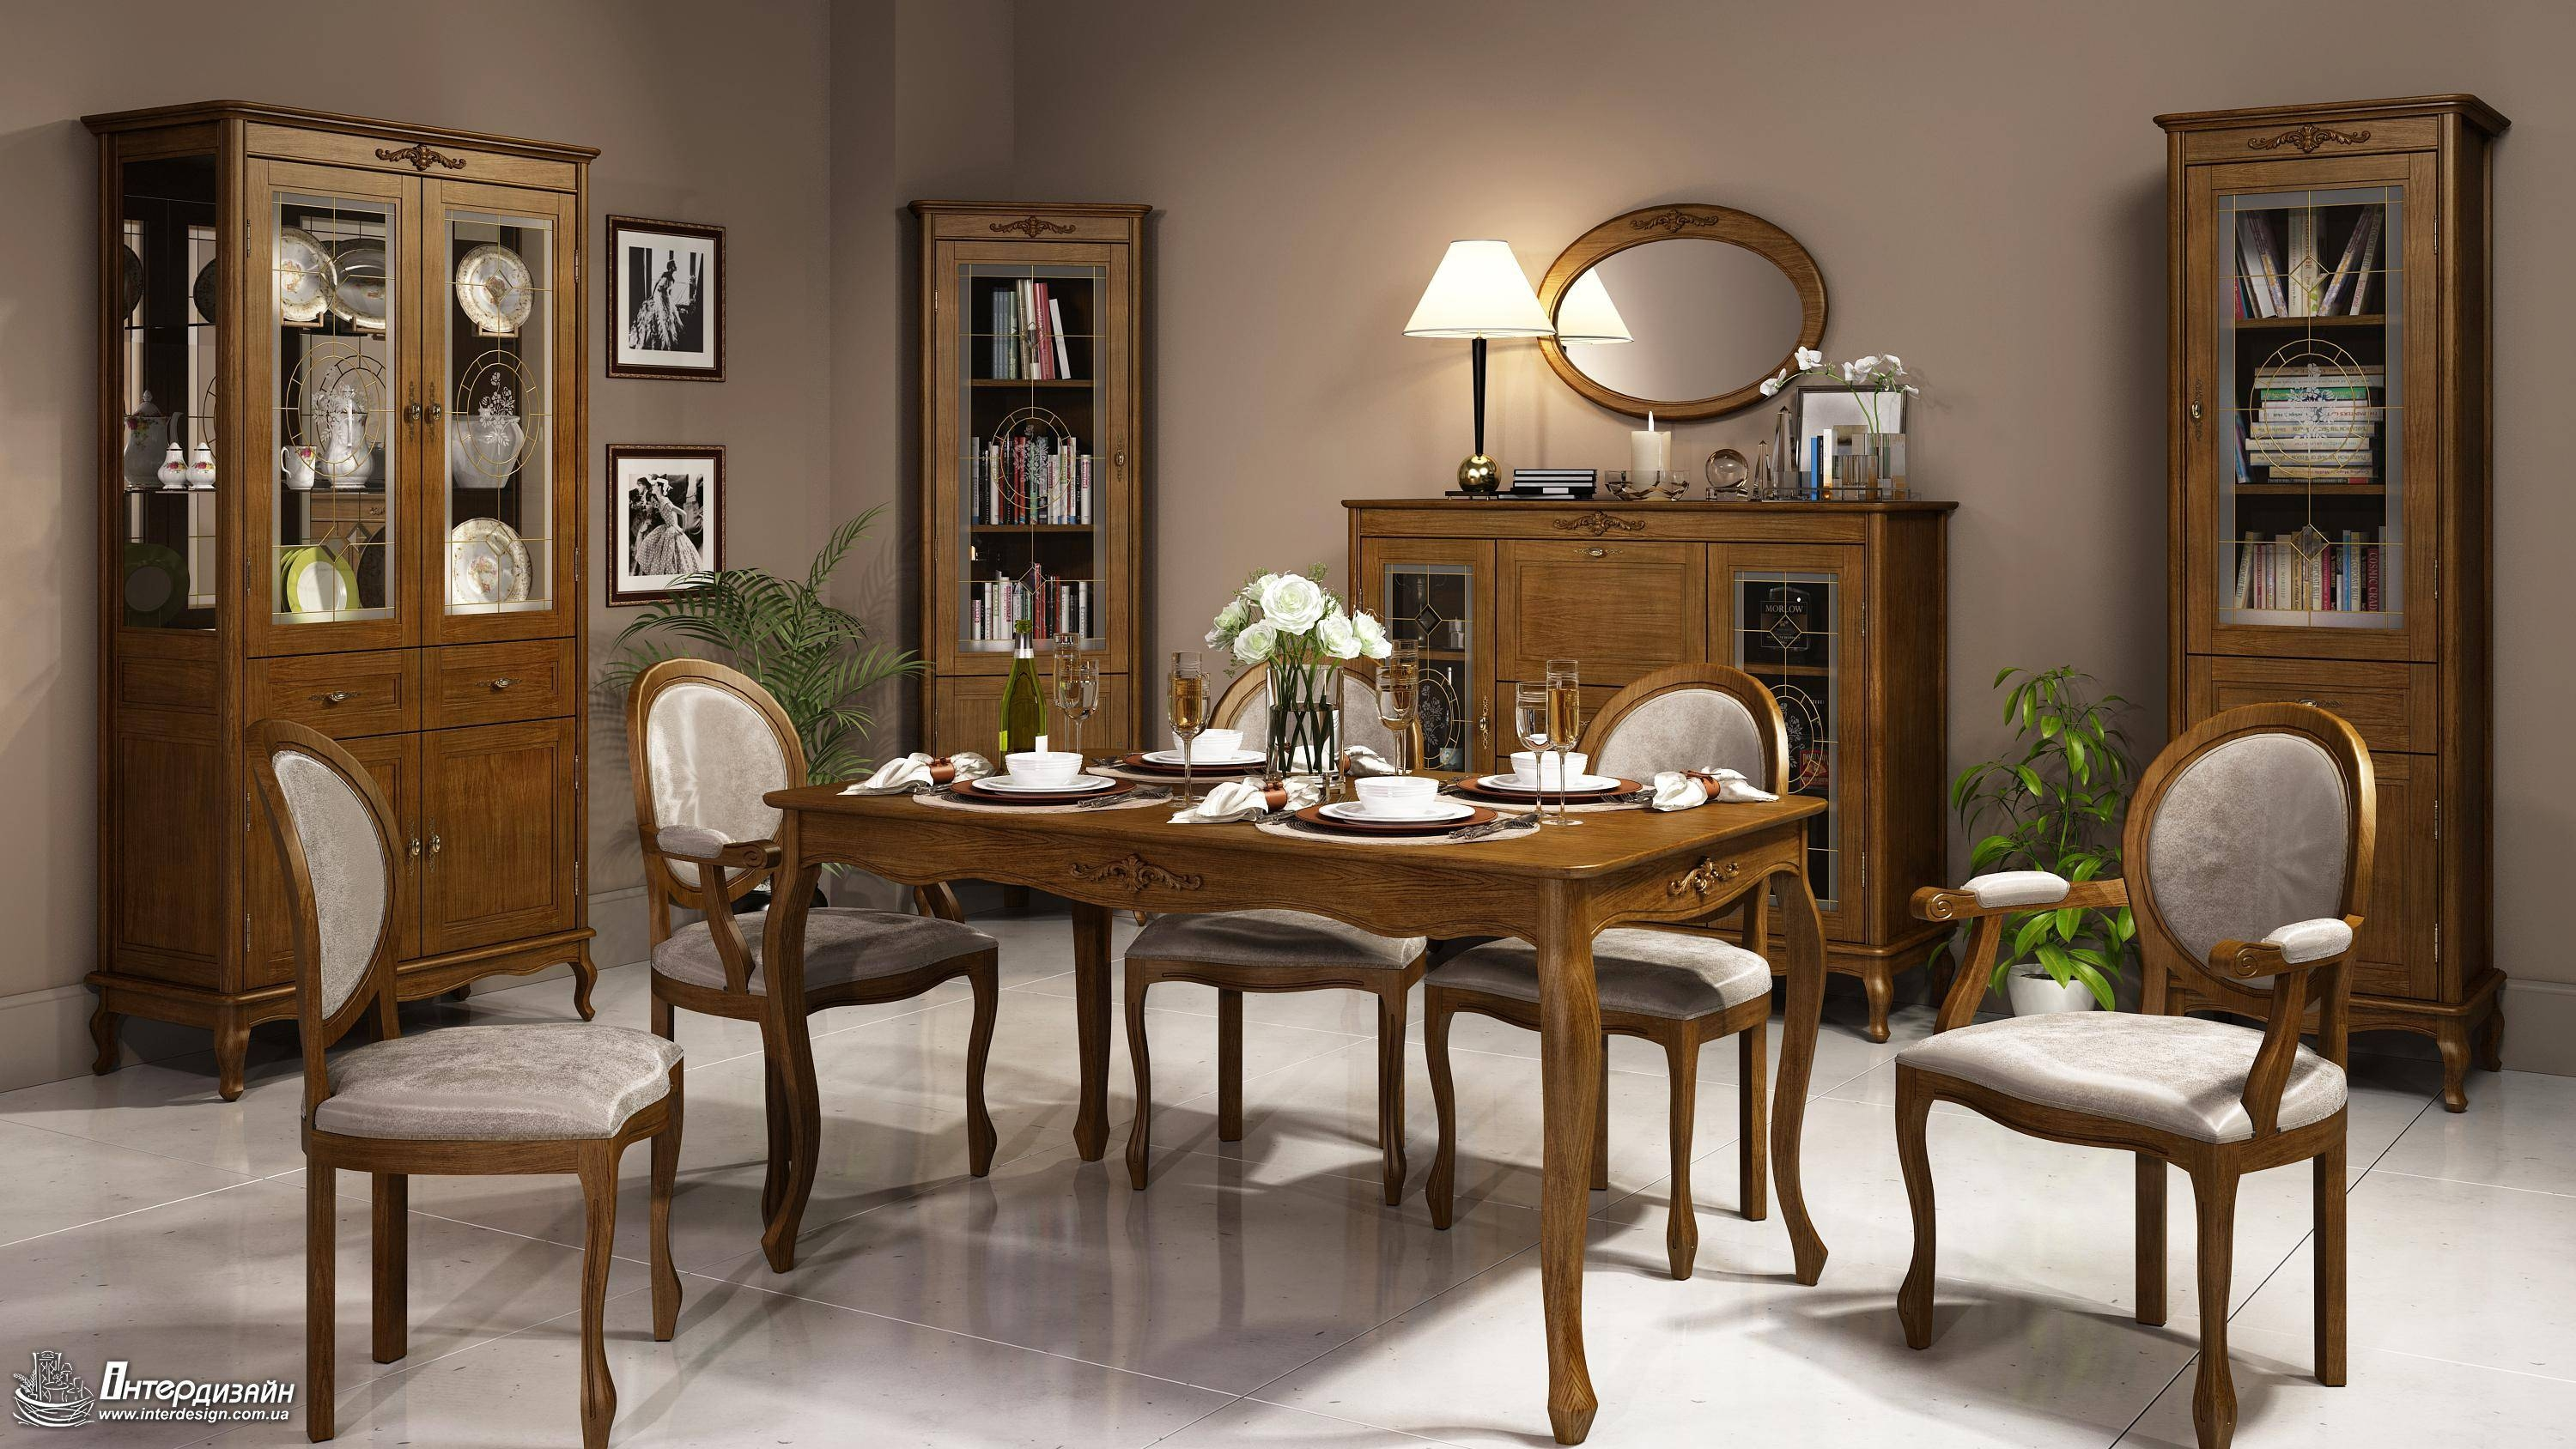 Decorating: Elegant Dining Room Designinterdesignwith Brown With Regard To Recent Dining Room Table Chairs And Sideboards (View 5 of 15)